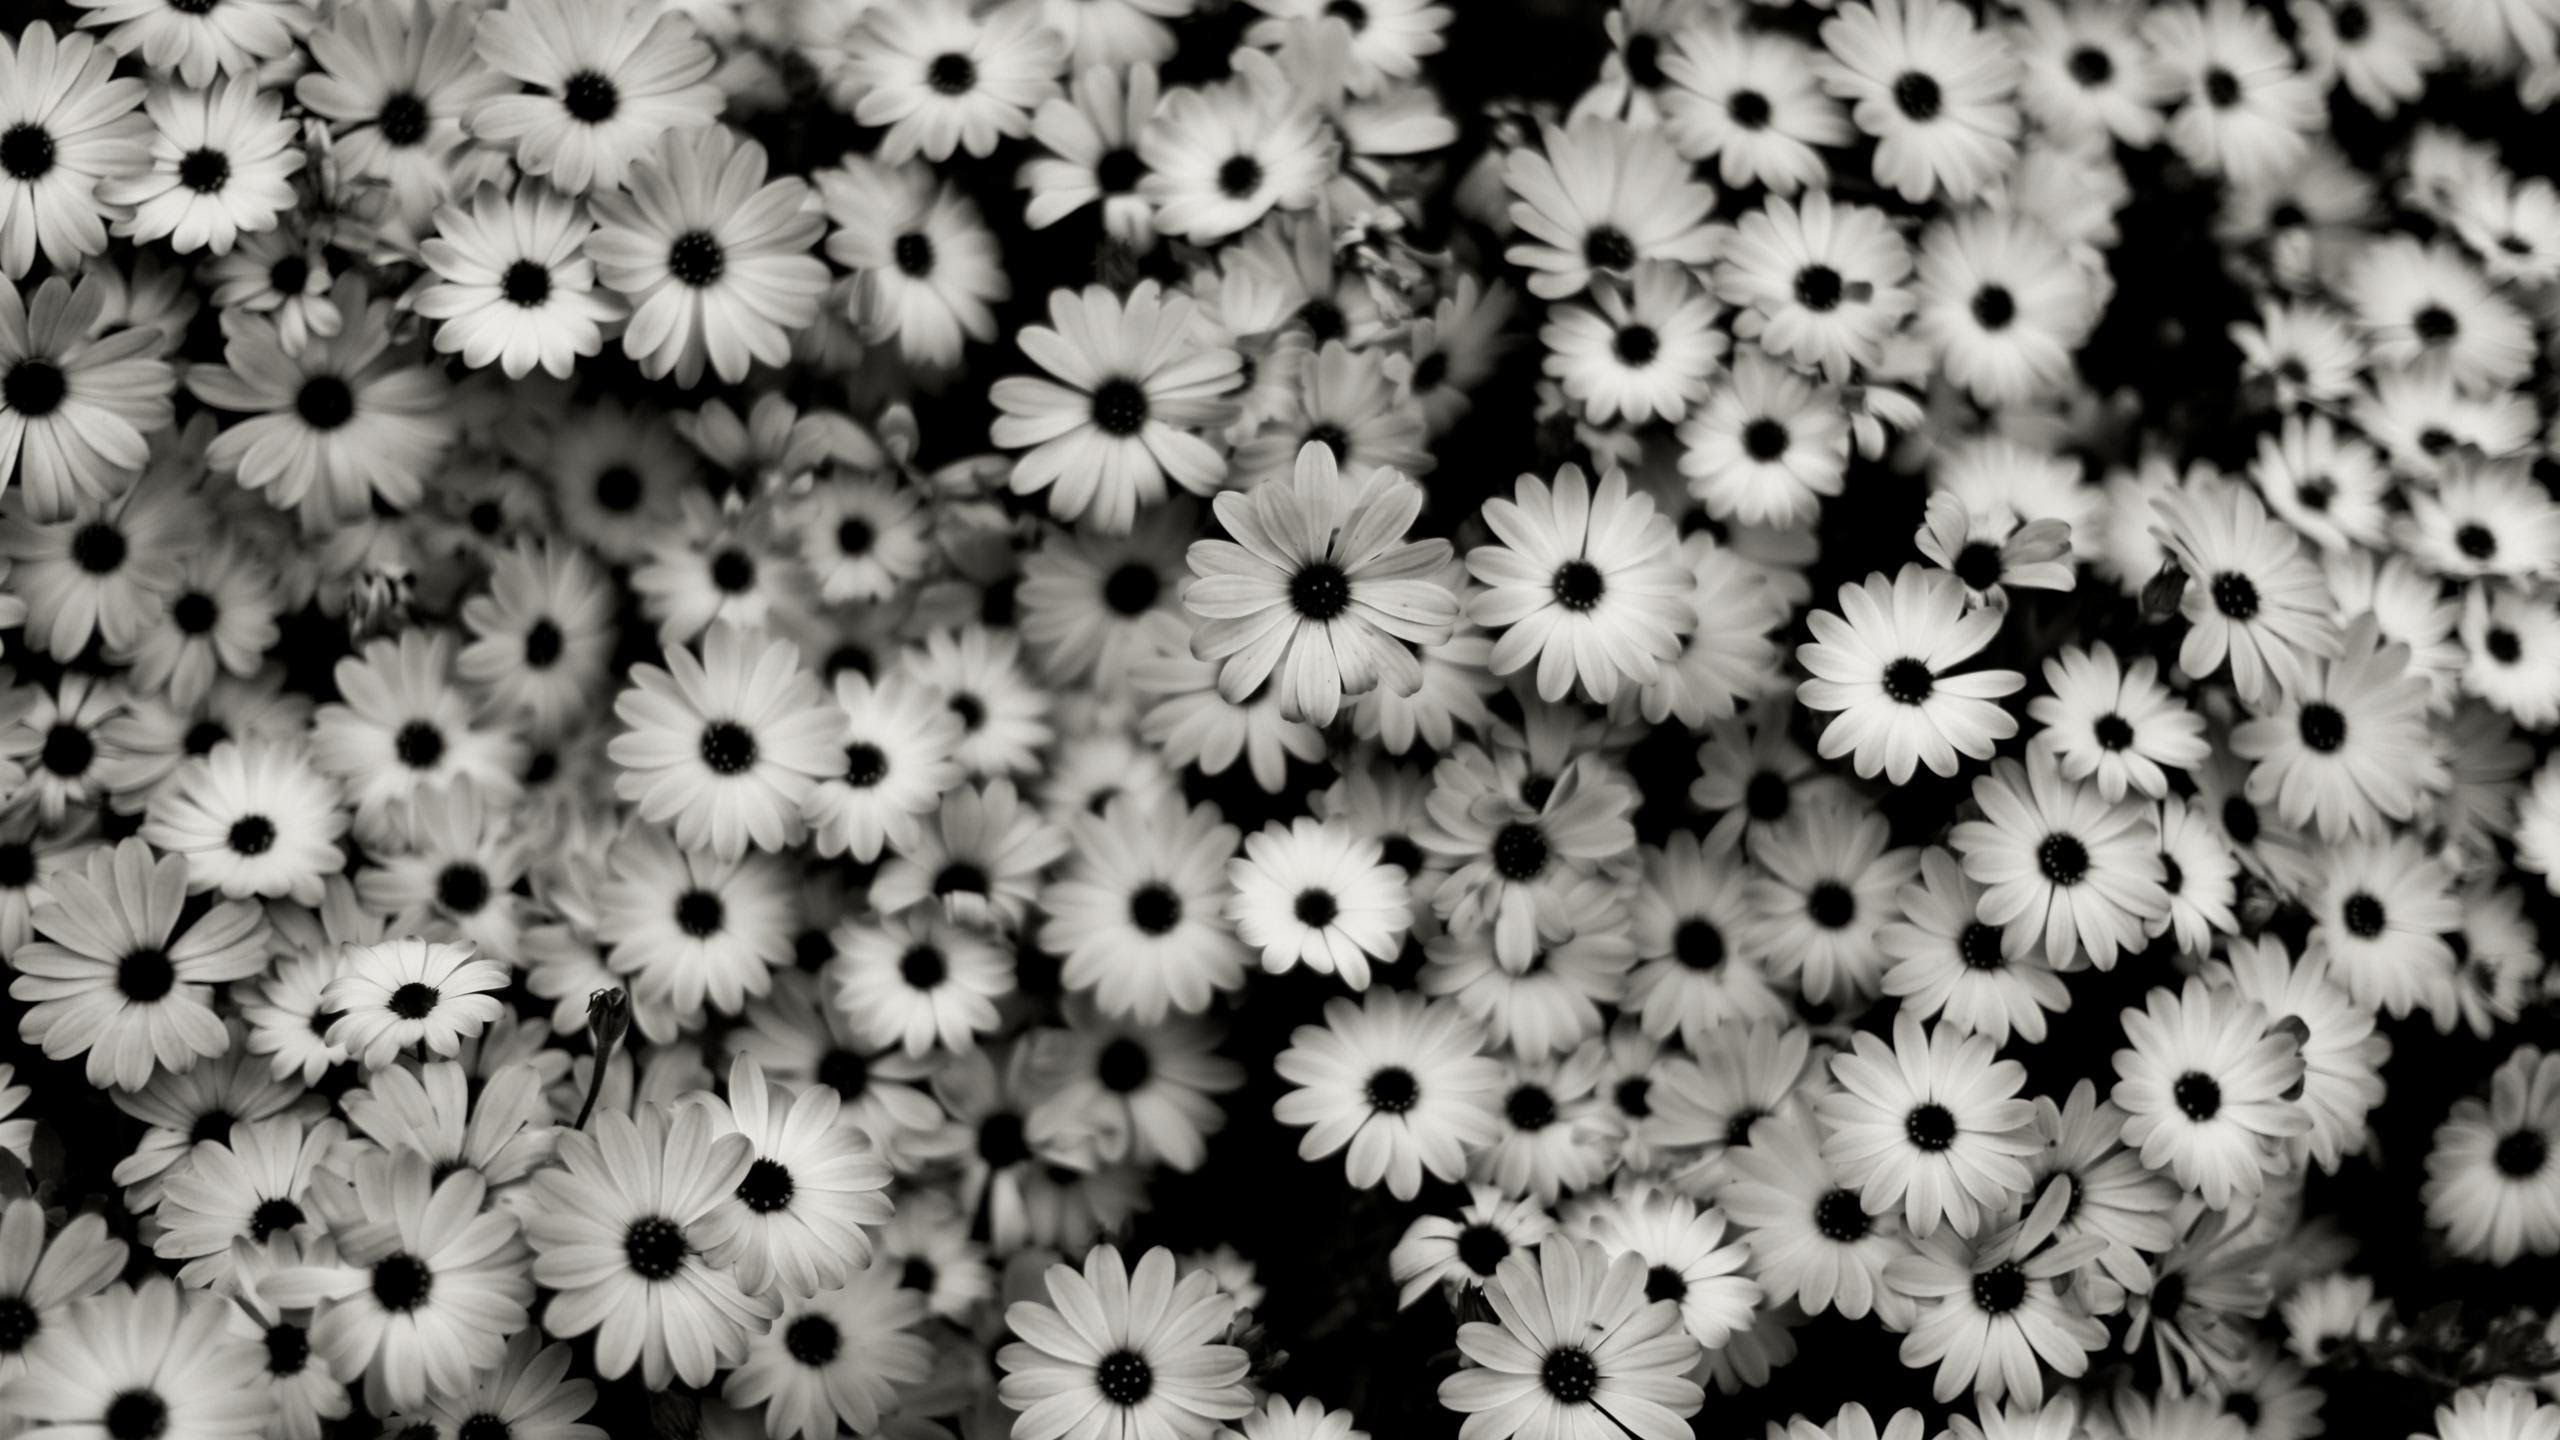 Black And White Vintage Flowers Tumblr 83202 Pixzone Wallpapers High Quality Desktop Backgr Hello Wallpaper Black And White Wallpaper Desktop Background Nature